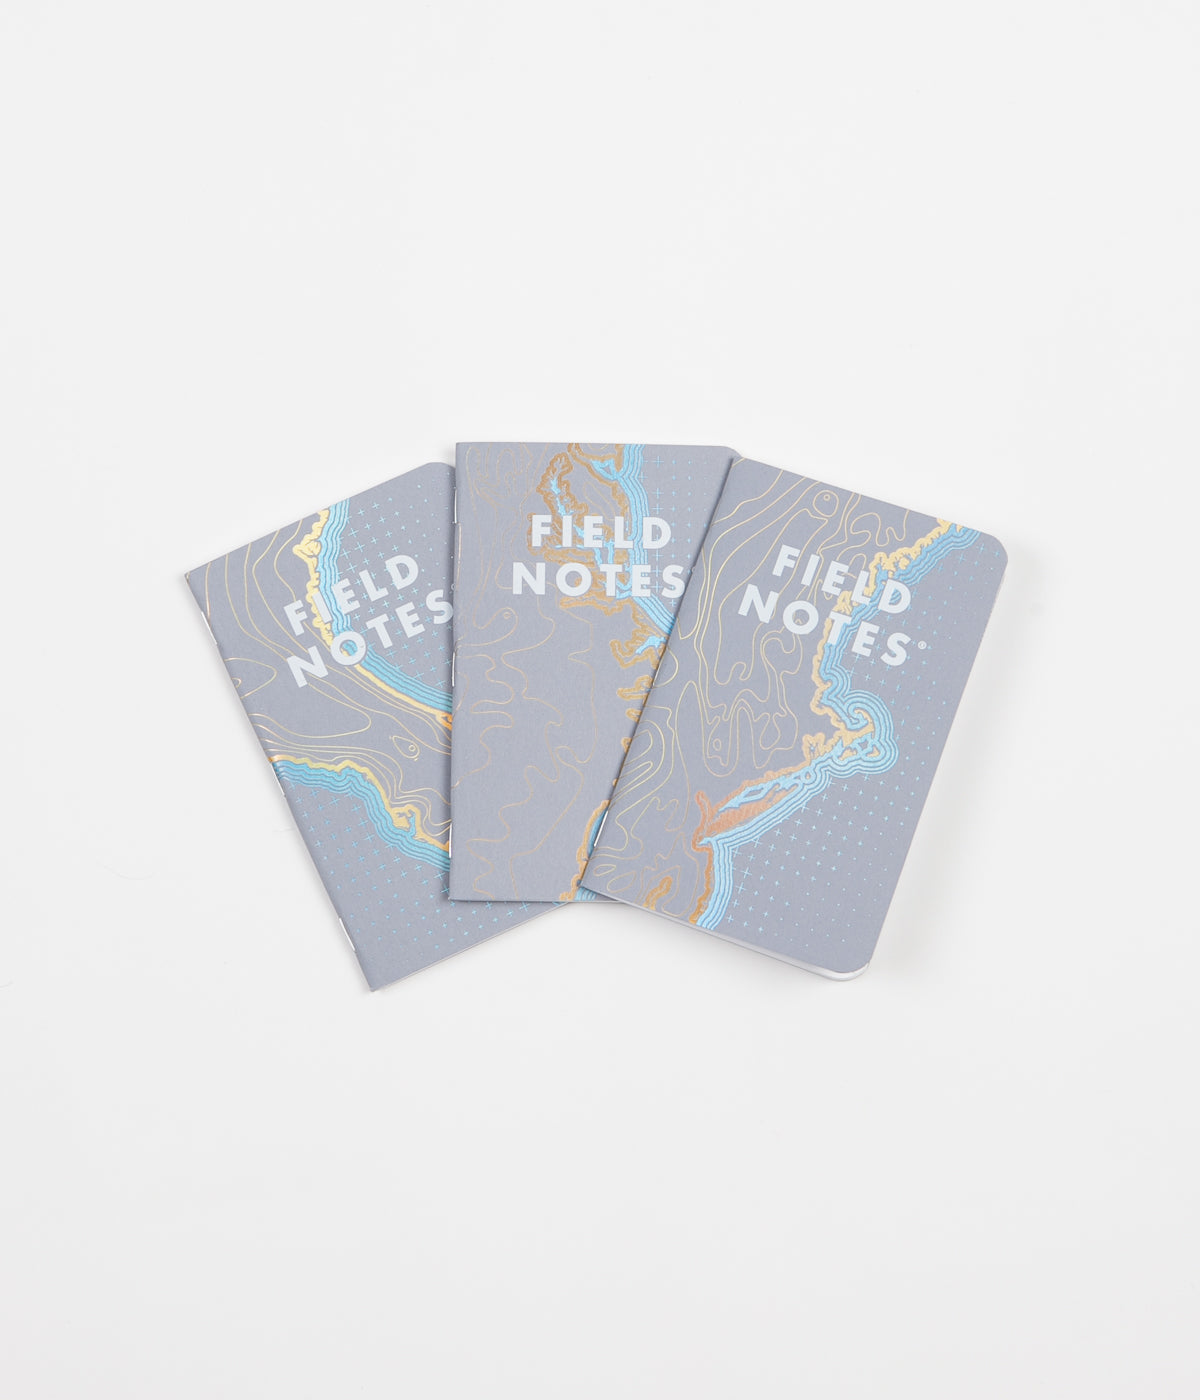 Field Notes Coastal Notebook - West